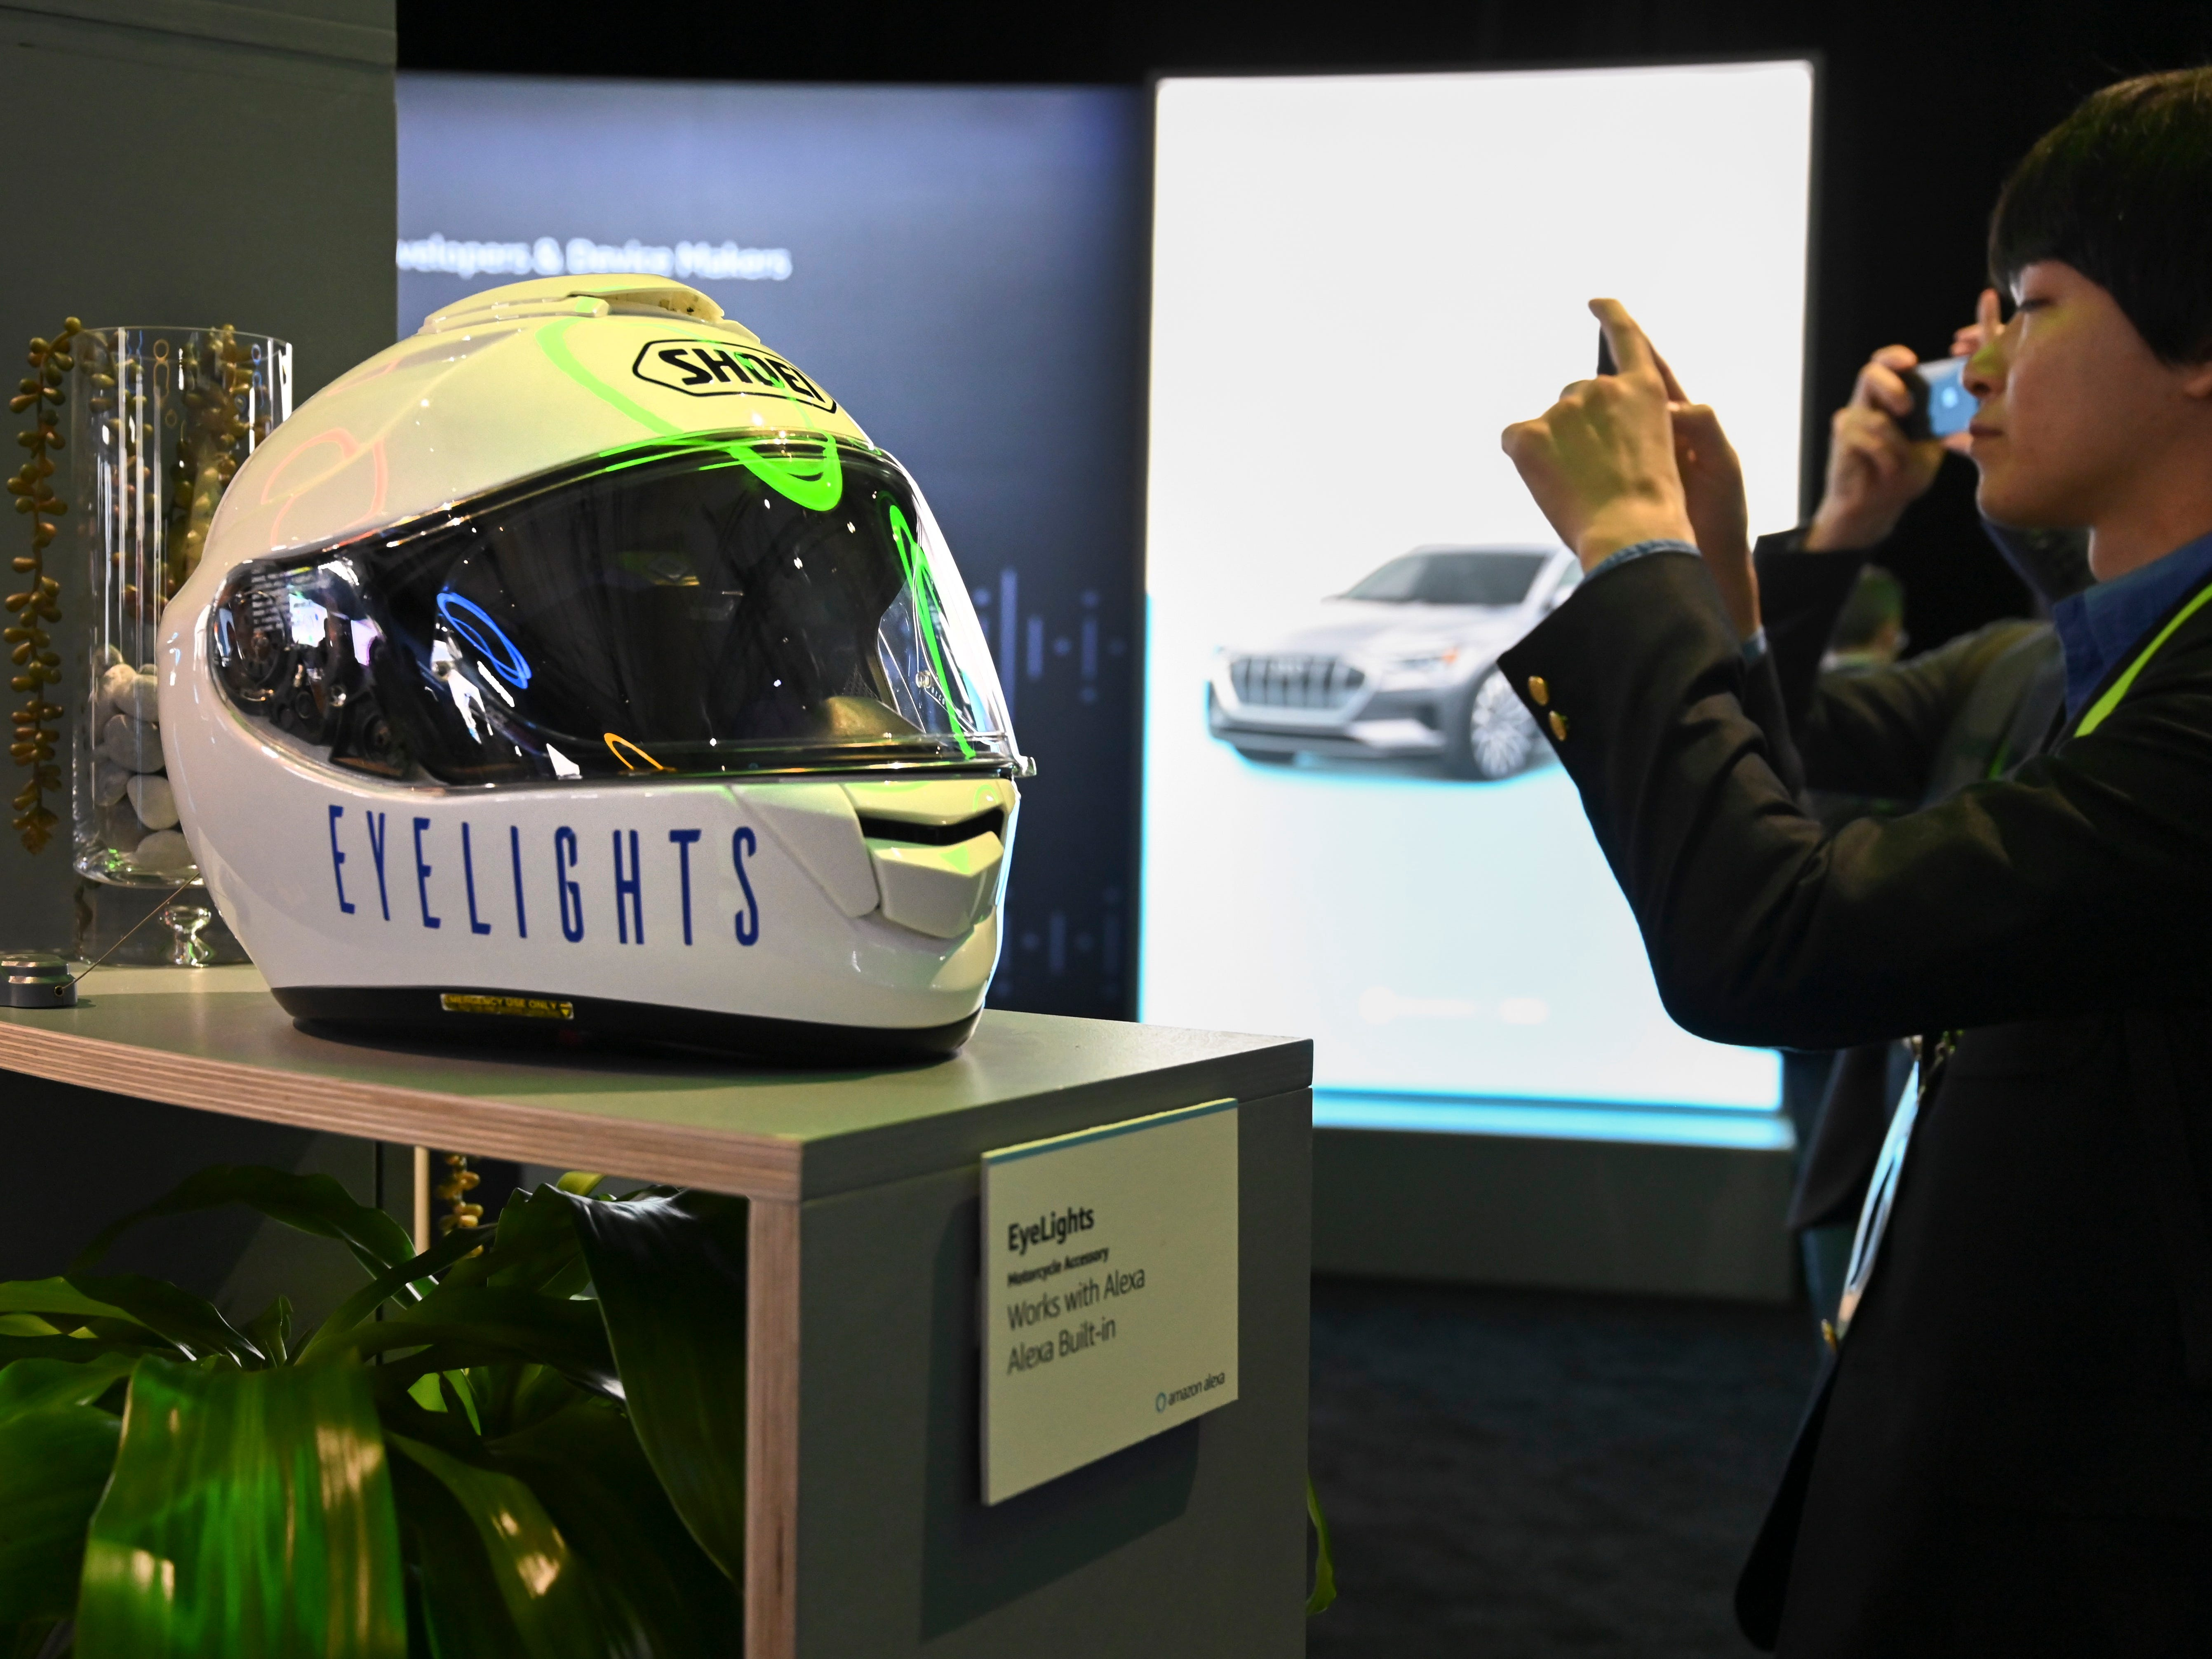 Eyelightings, an Alexa enabled motorcycle helmet.